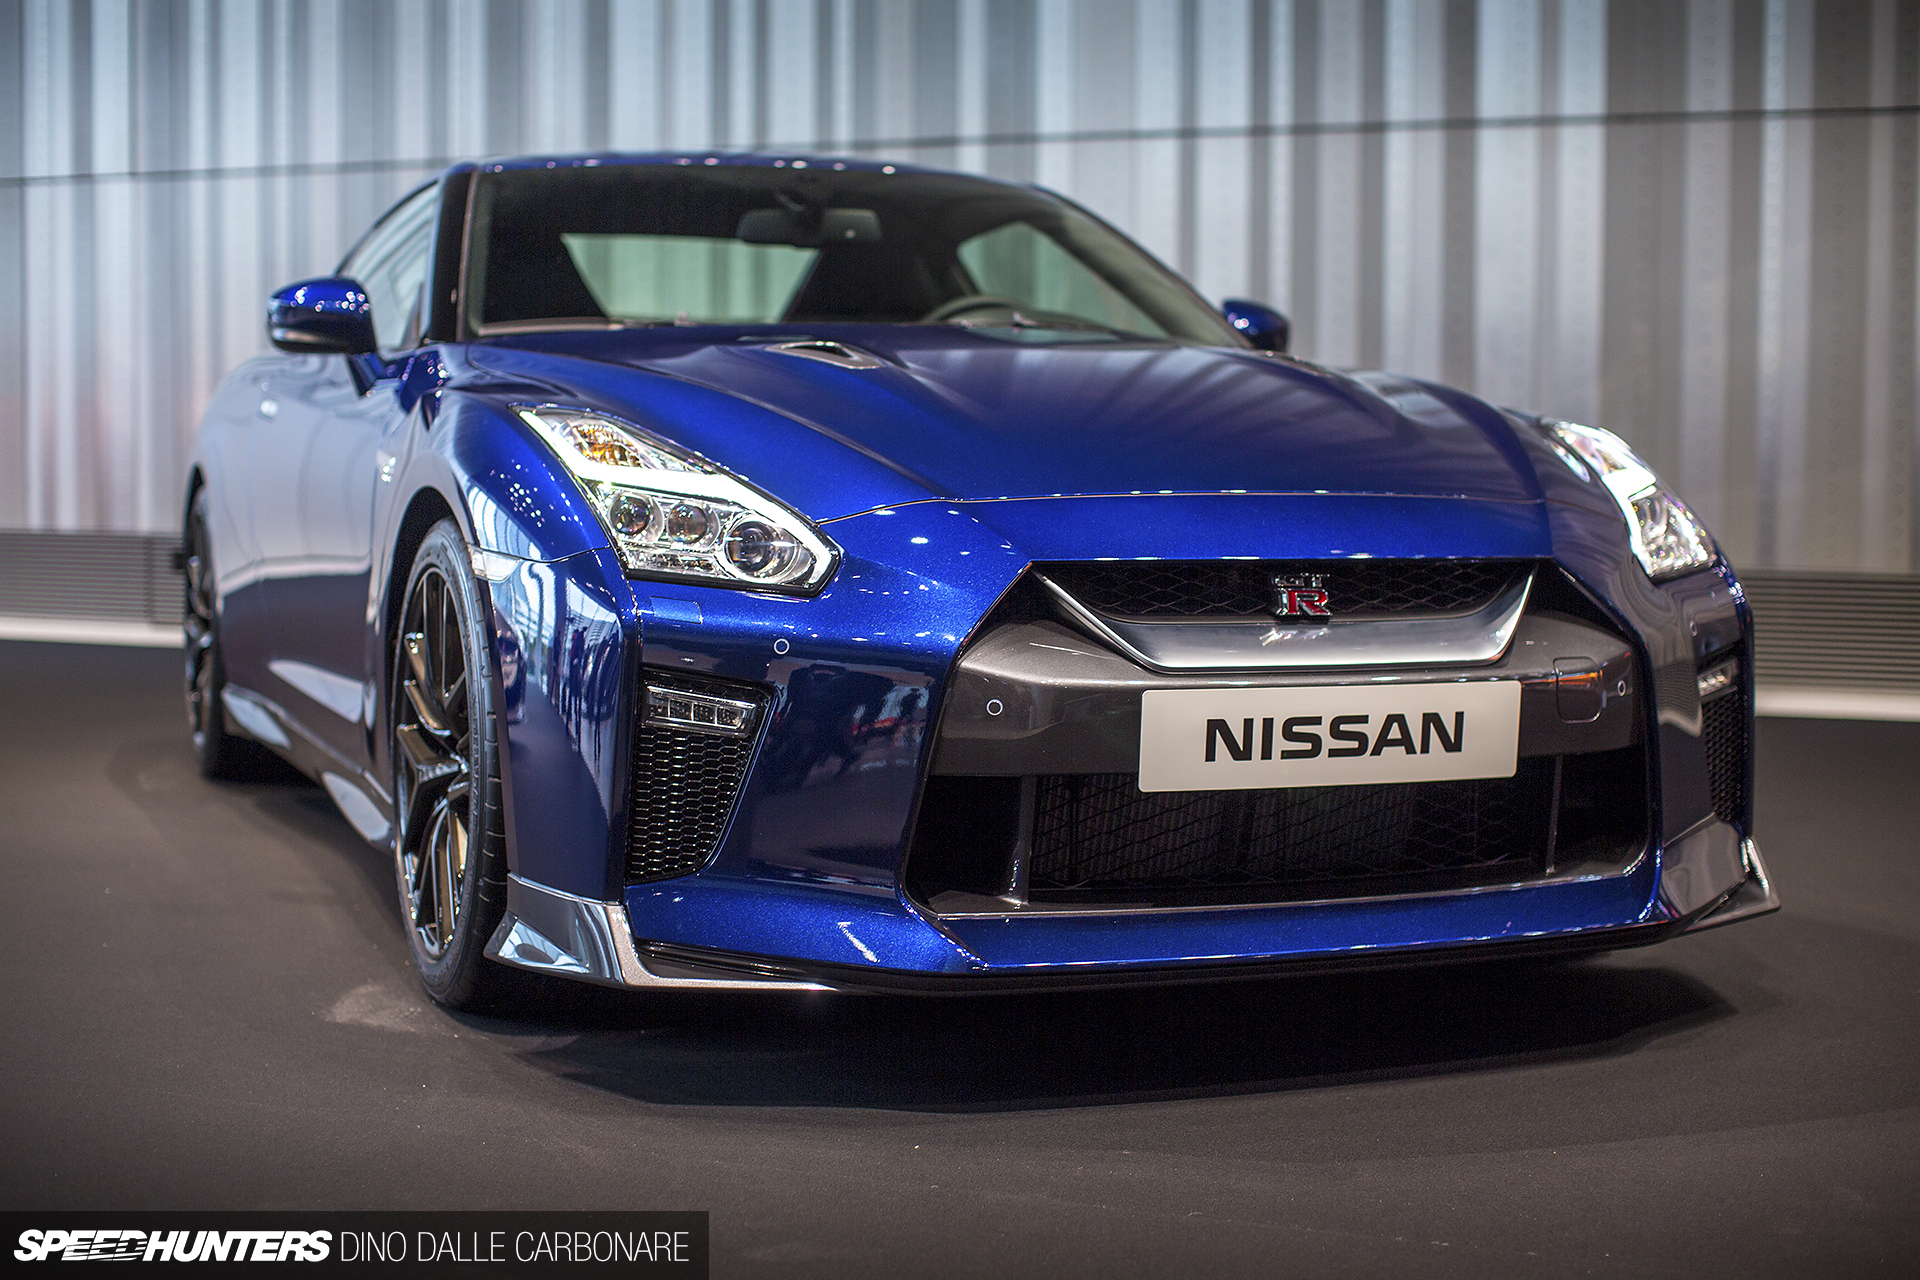 2018 Nissan Gtr R35 >> The New GT-R, Unveiled At Nissan HQ - Speedhunters